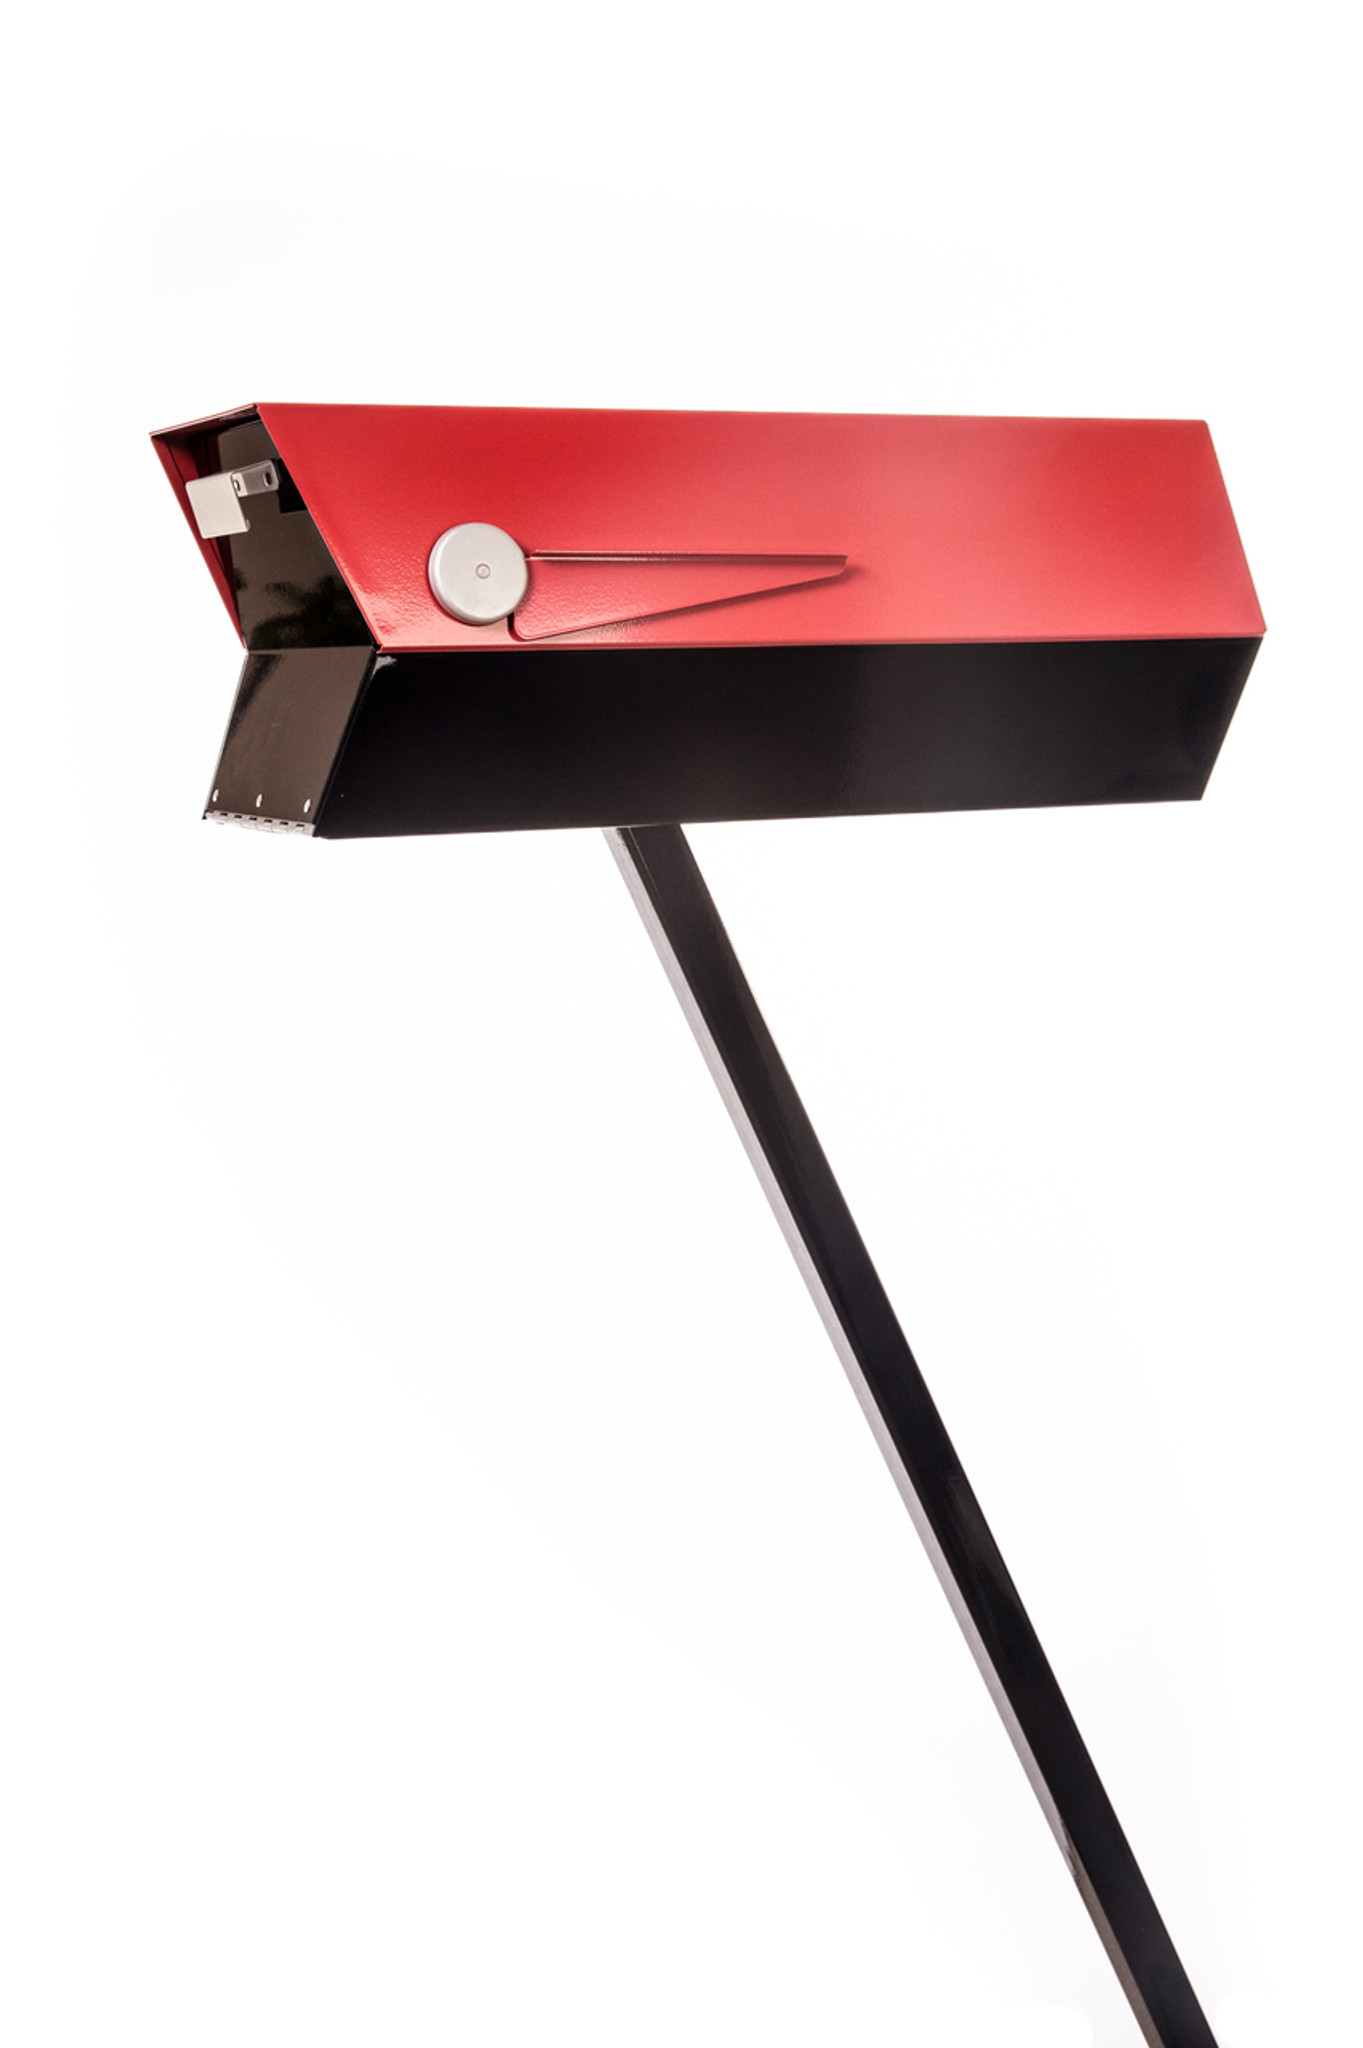 Image of: Modbox Curbside Mailbox Hip Haven